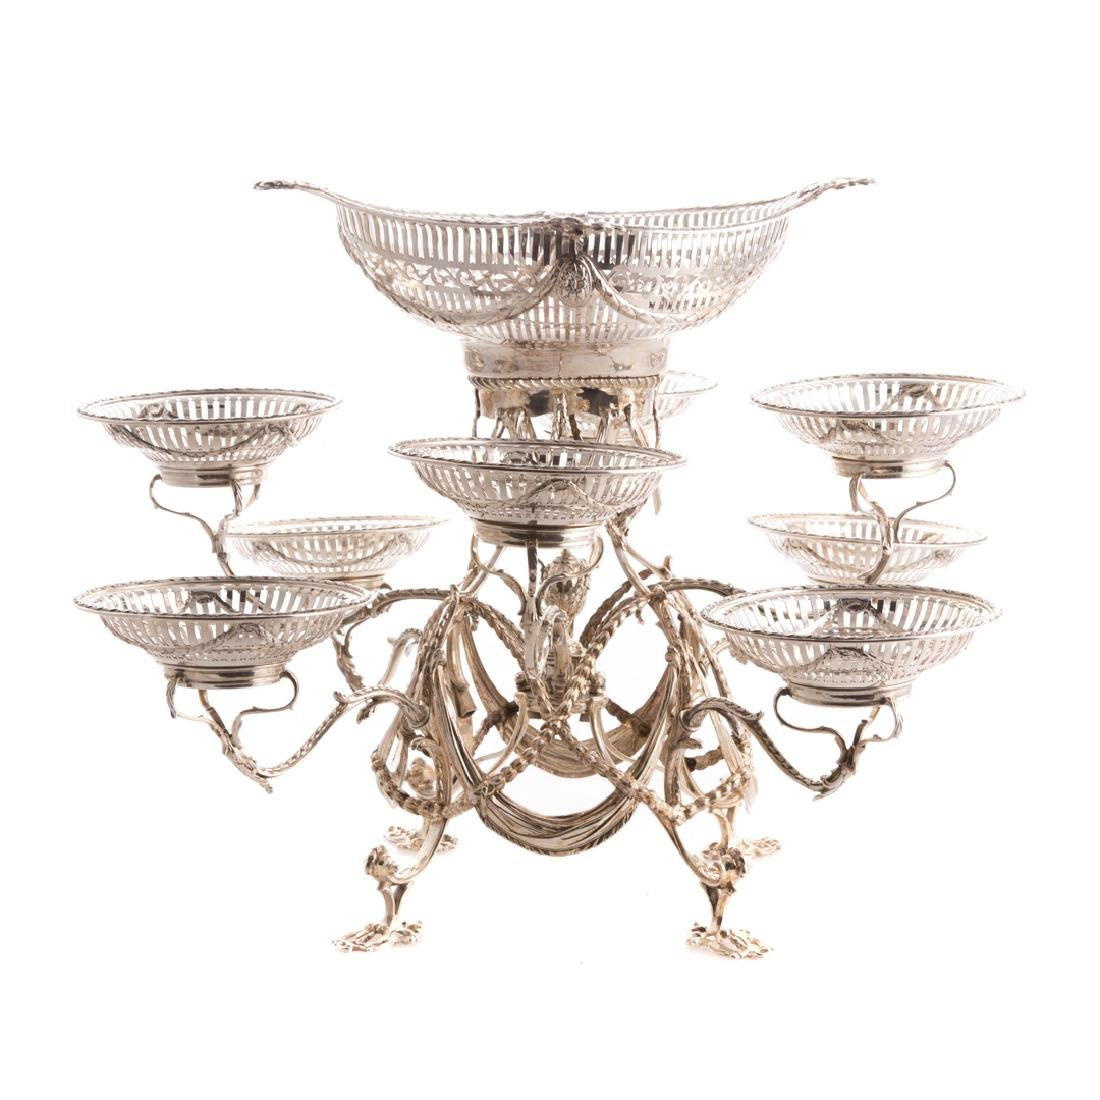 Prized Georgian sterling eight-armed epergne